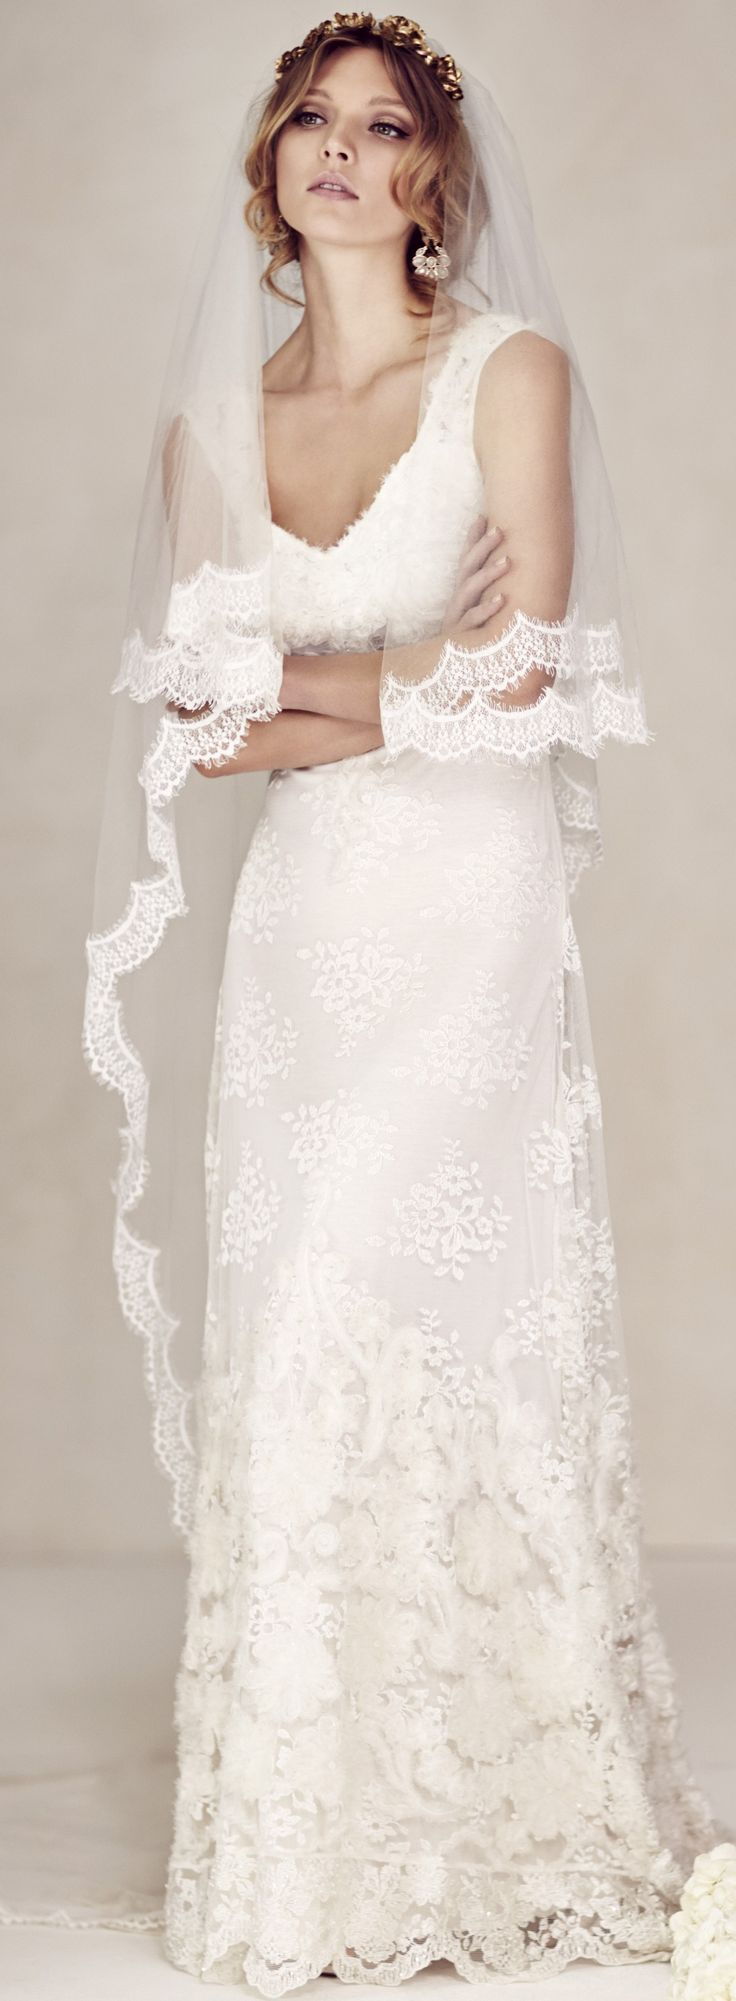 best my style images on pinterest wedding frocks wedding ideas